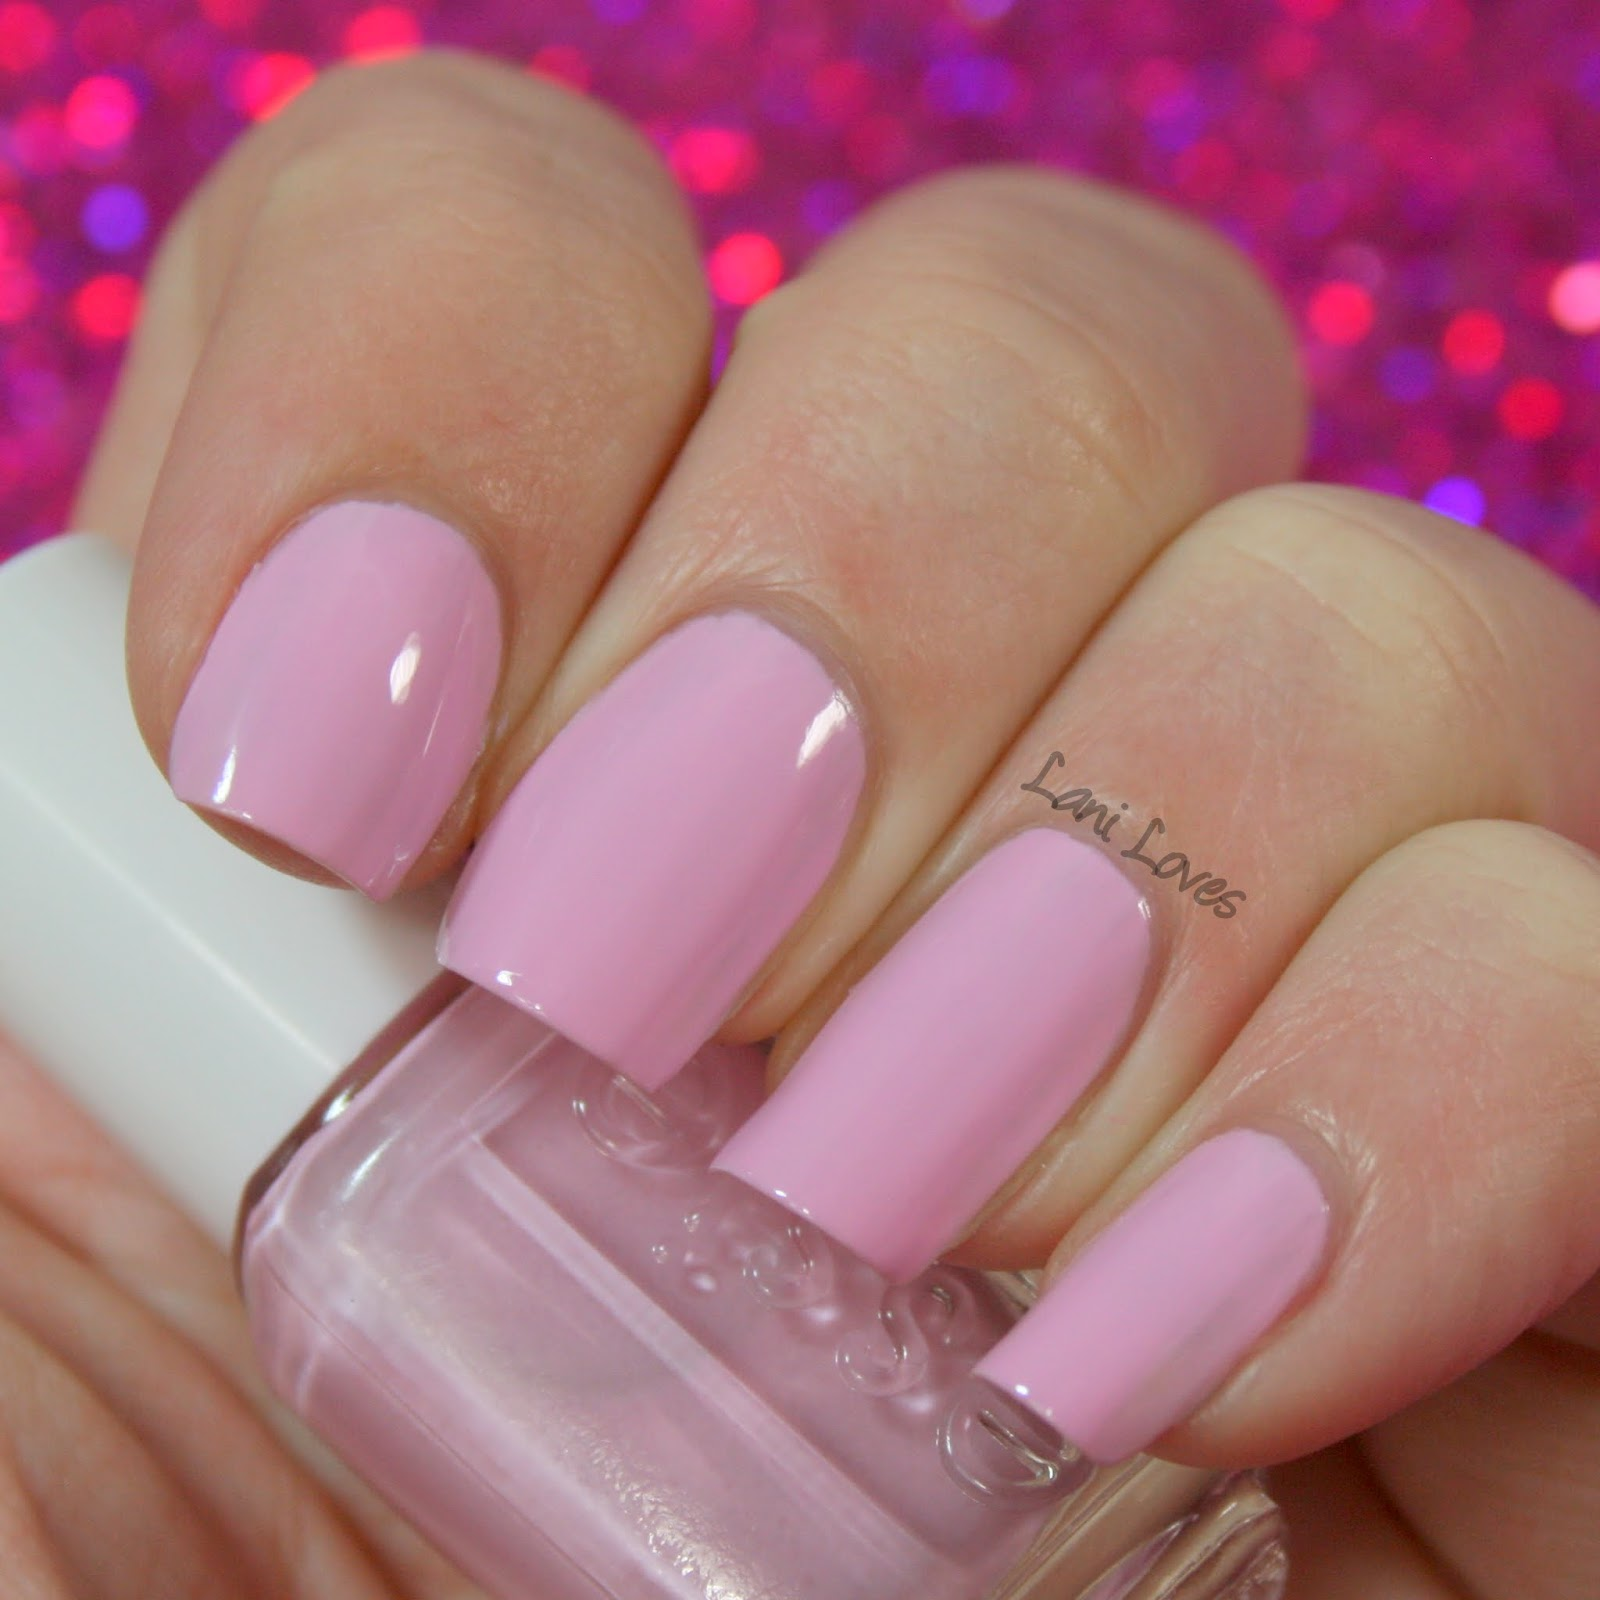 Essie French Affair Swatch